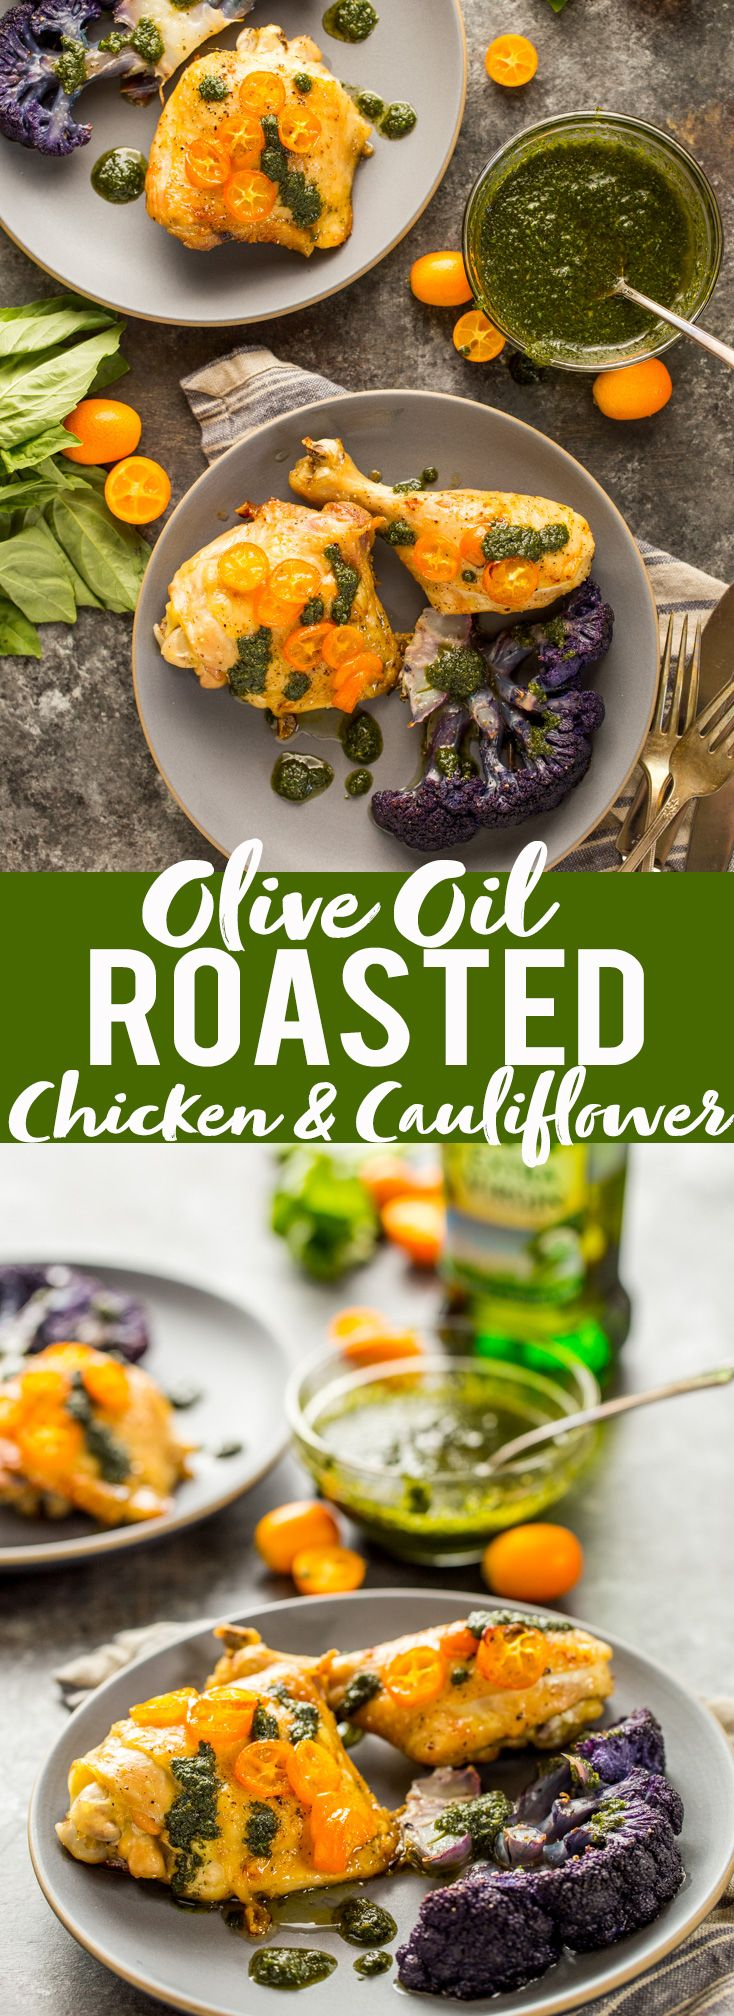 Olive Oil Roasted Chicken and Cauliflower is a combination of unexpected ingredients that come together to make a delicious dinner! #TheRecipeisSimple #ad